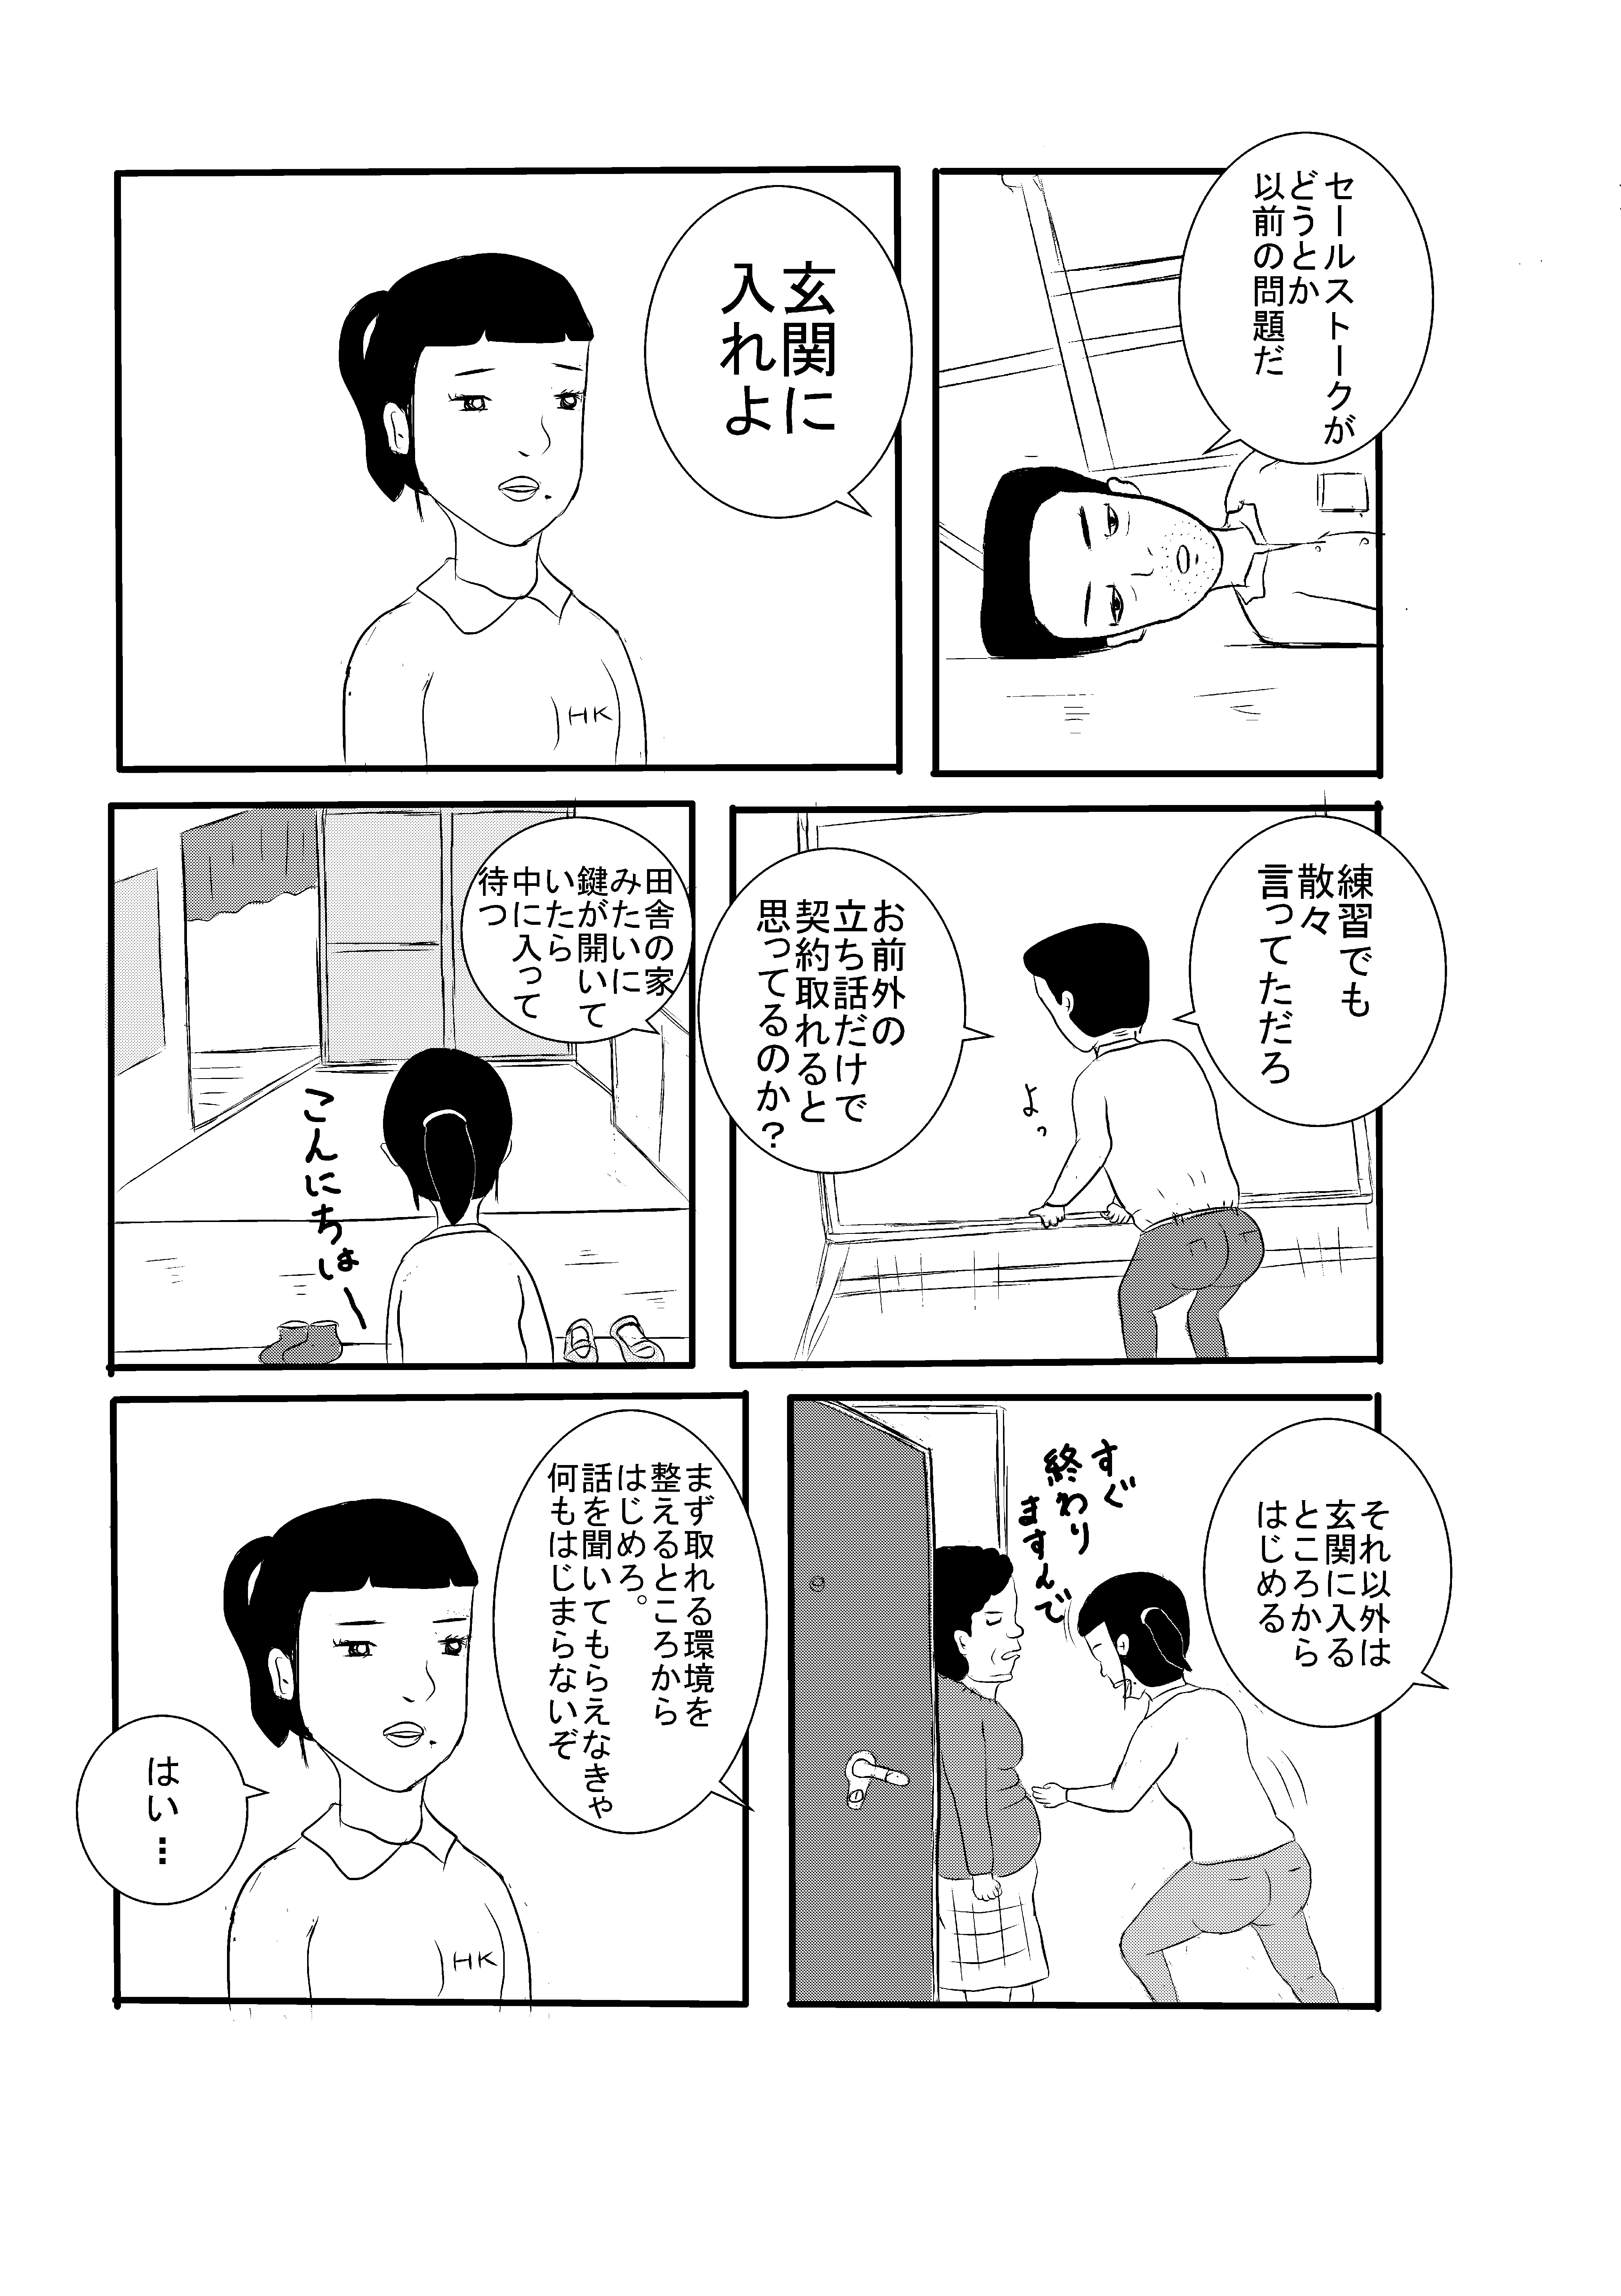 20180321144608f78.png